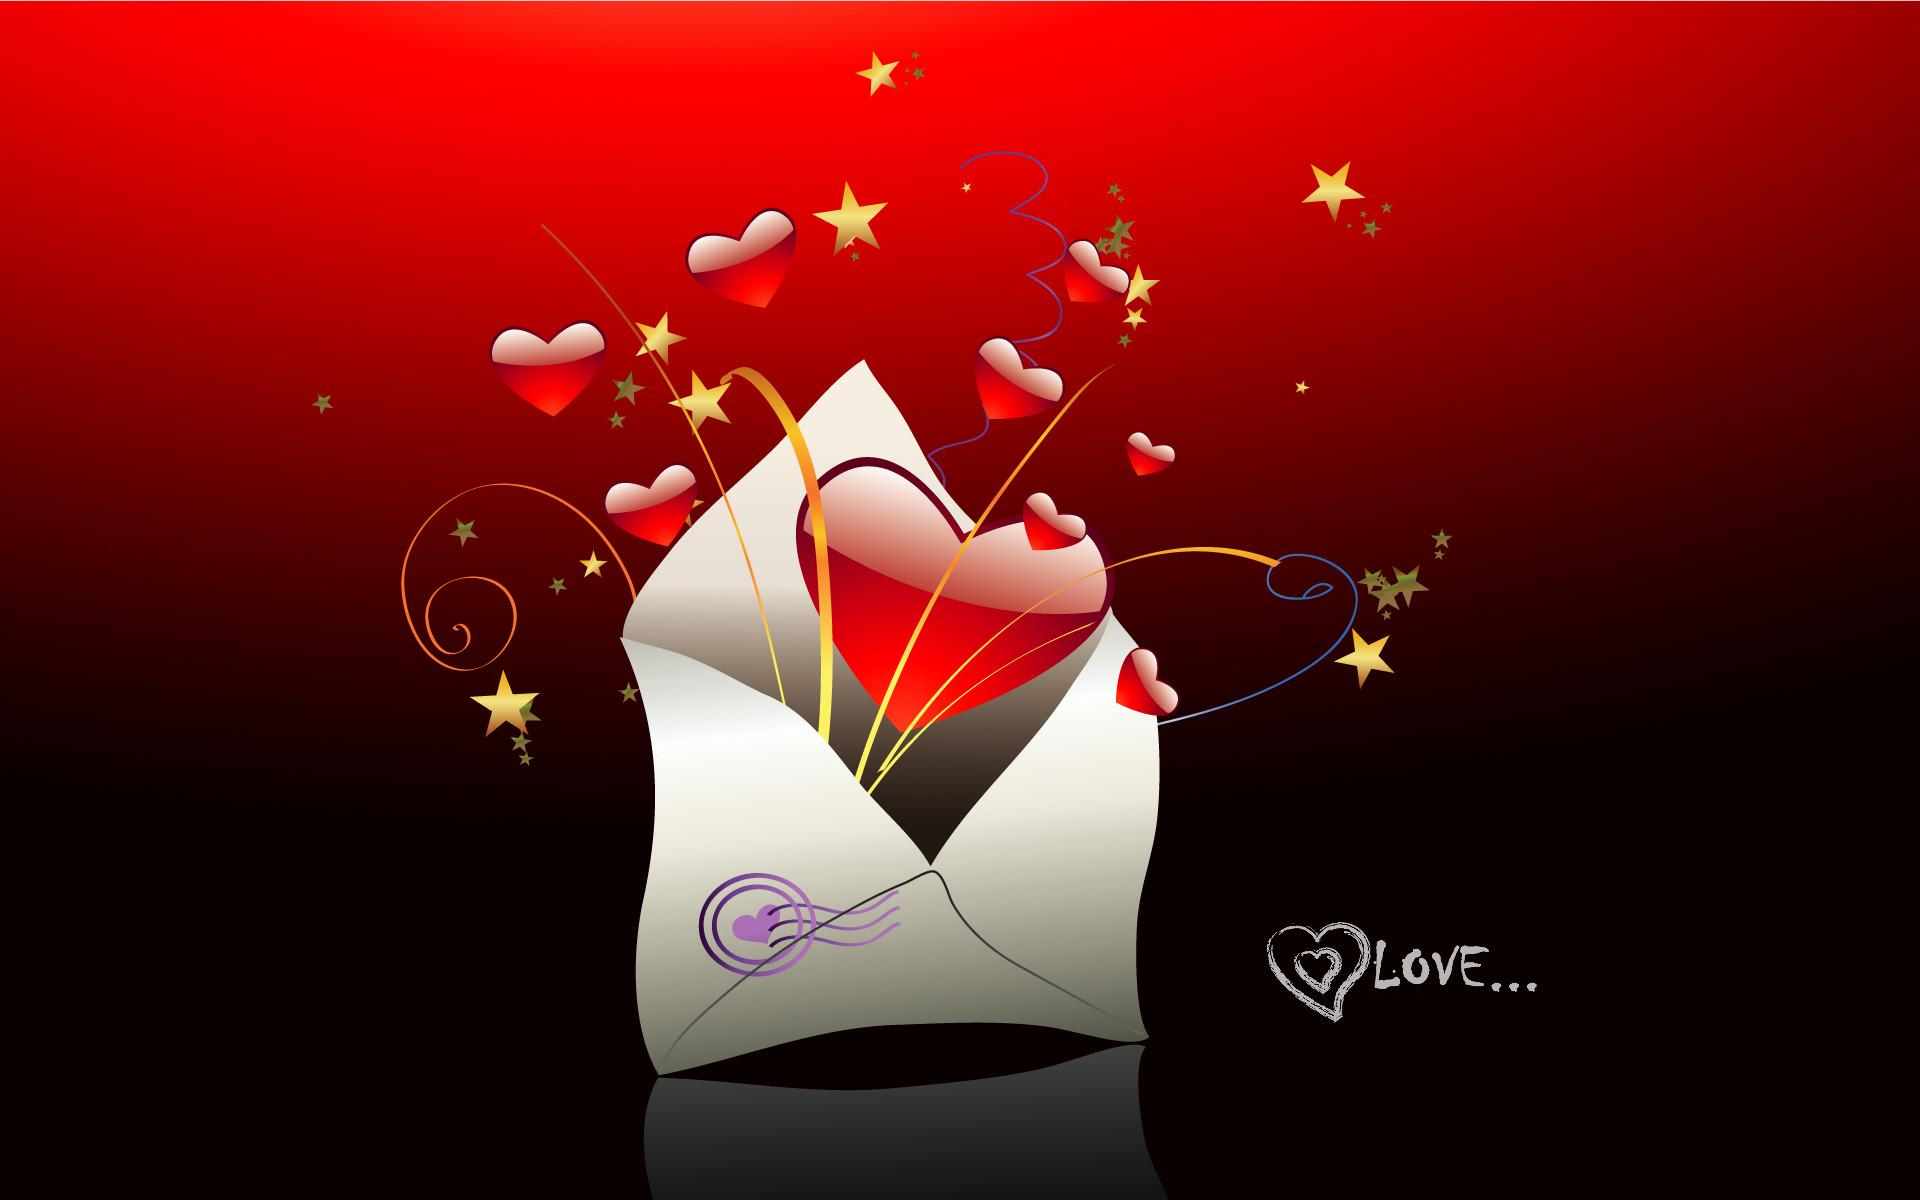 Hd wallpaper i love you - Love You Wallpapers 9573 Hd Wallpapers In Love Imagesci Com